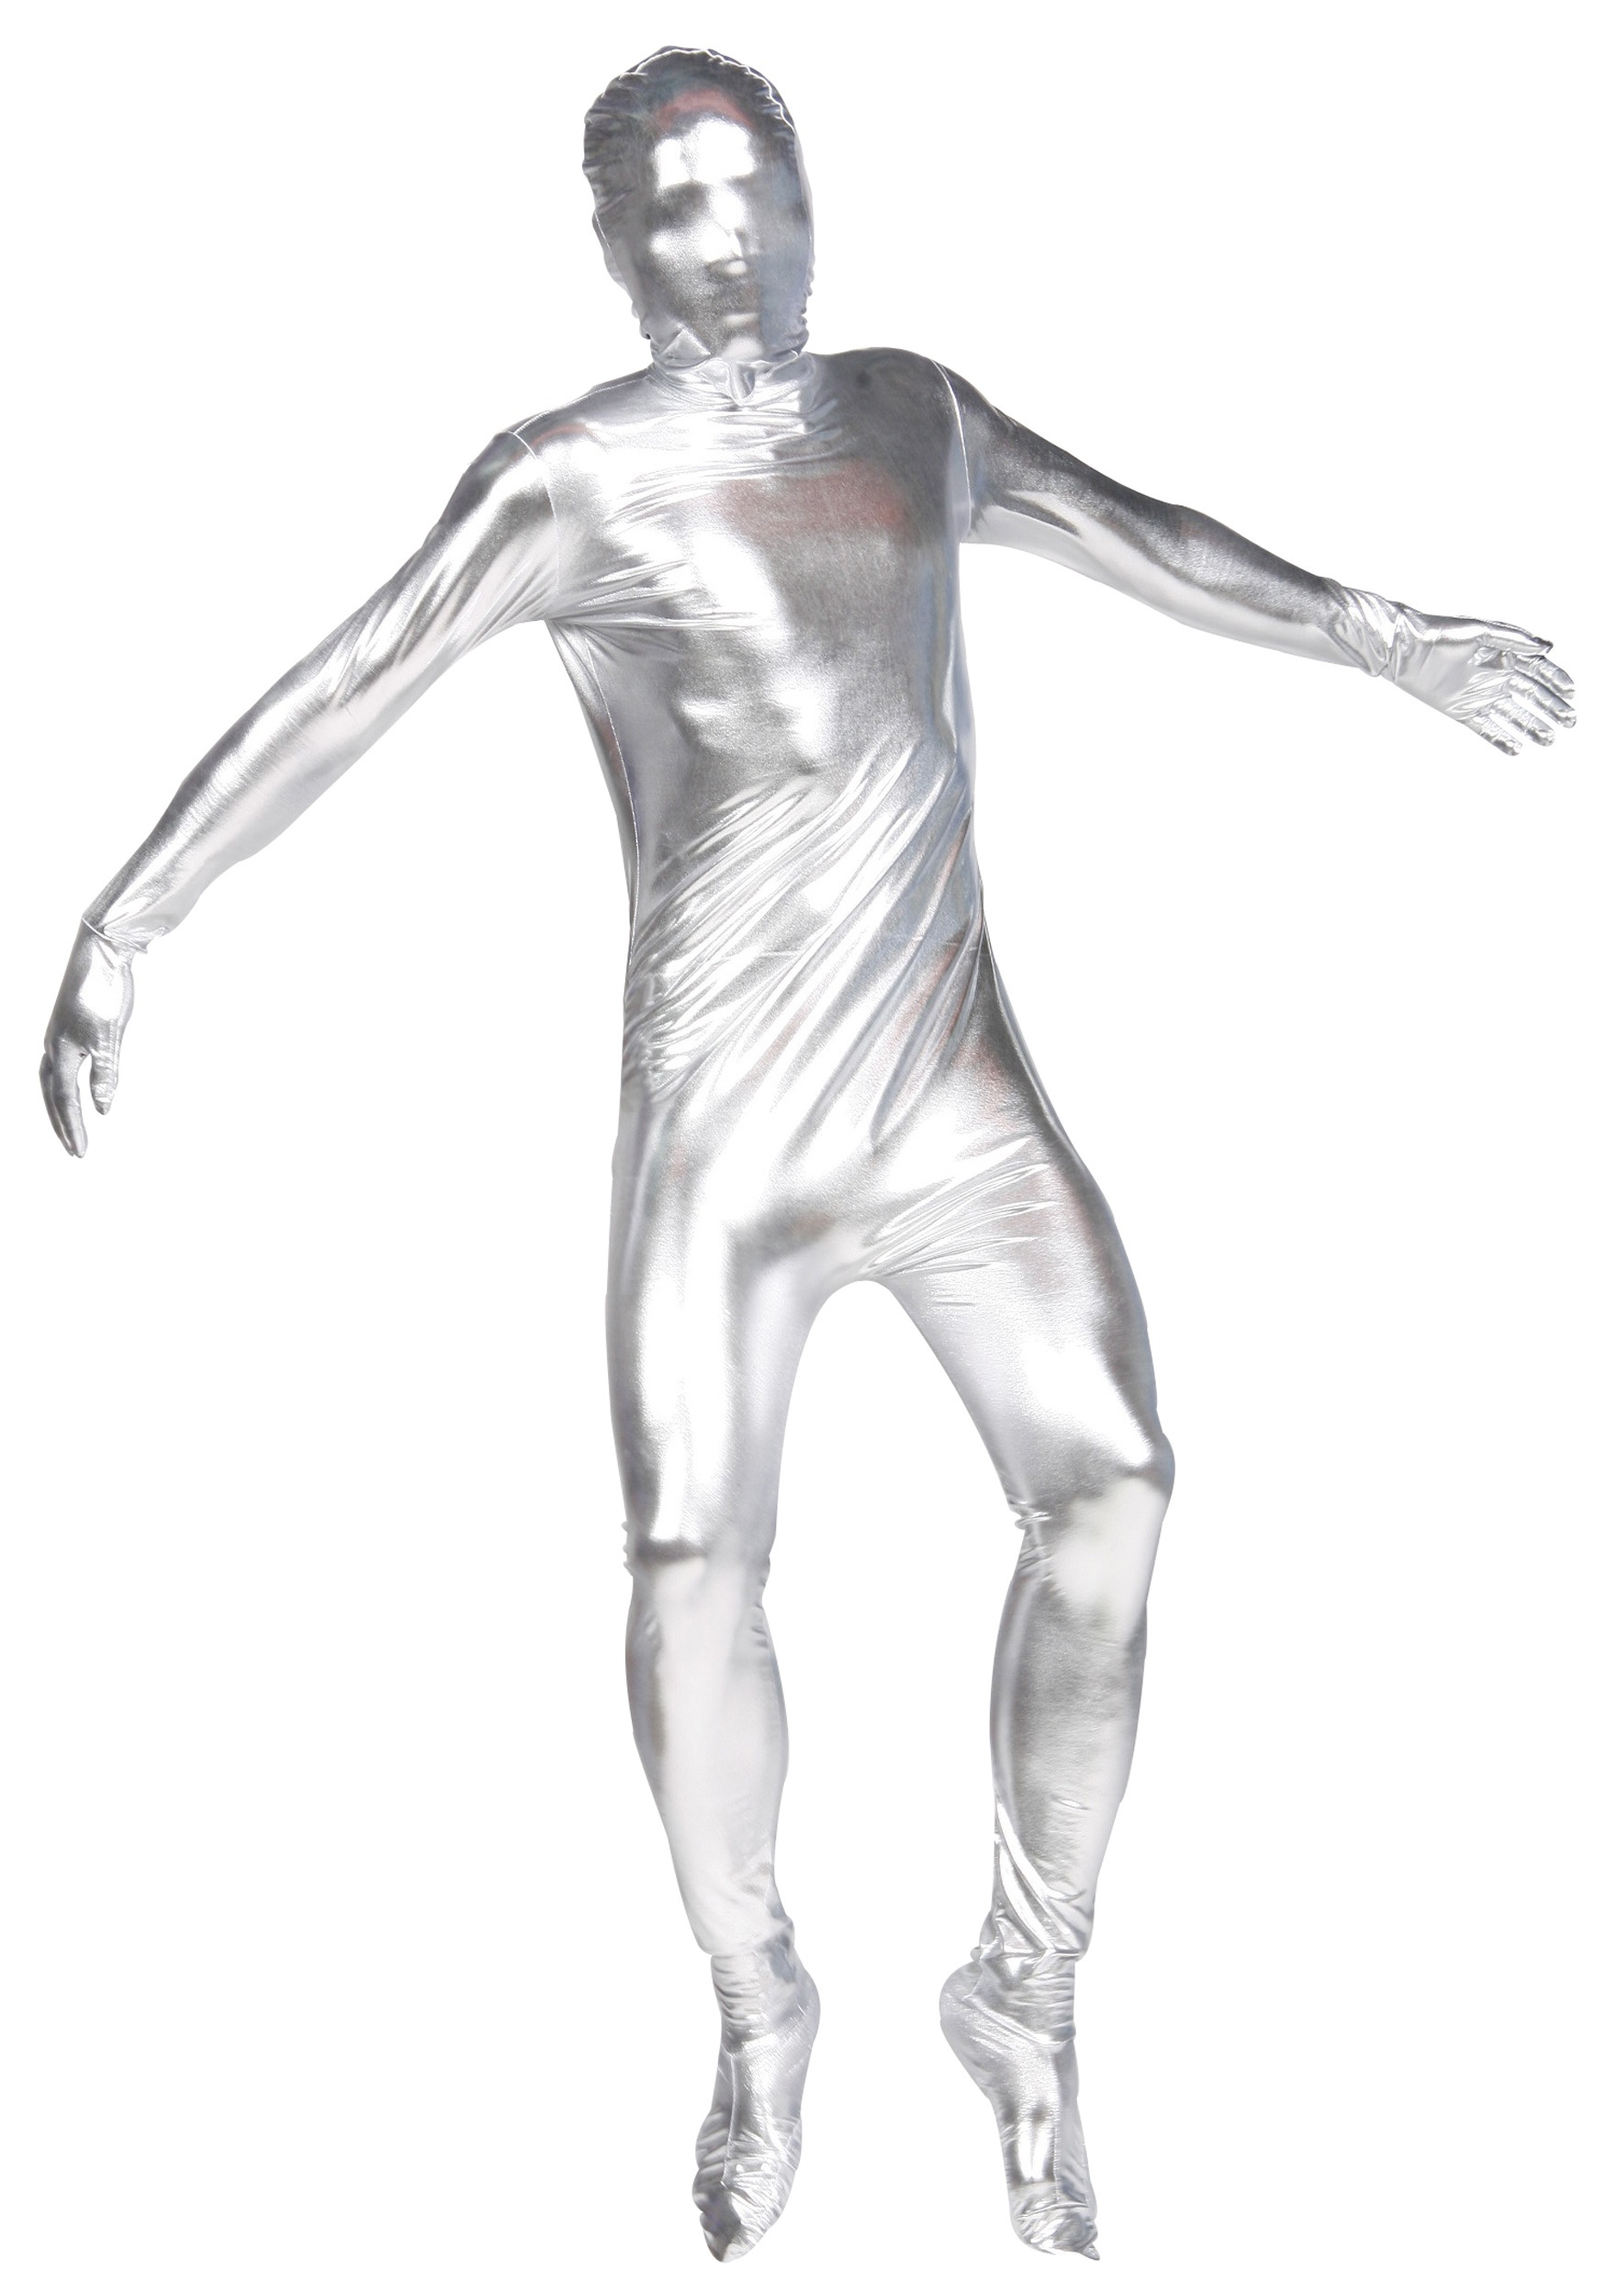 585fefc72 Silver Invisible Man Suit